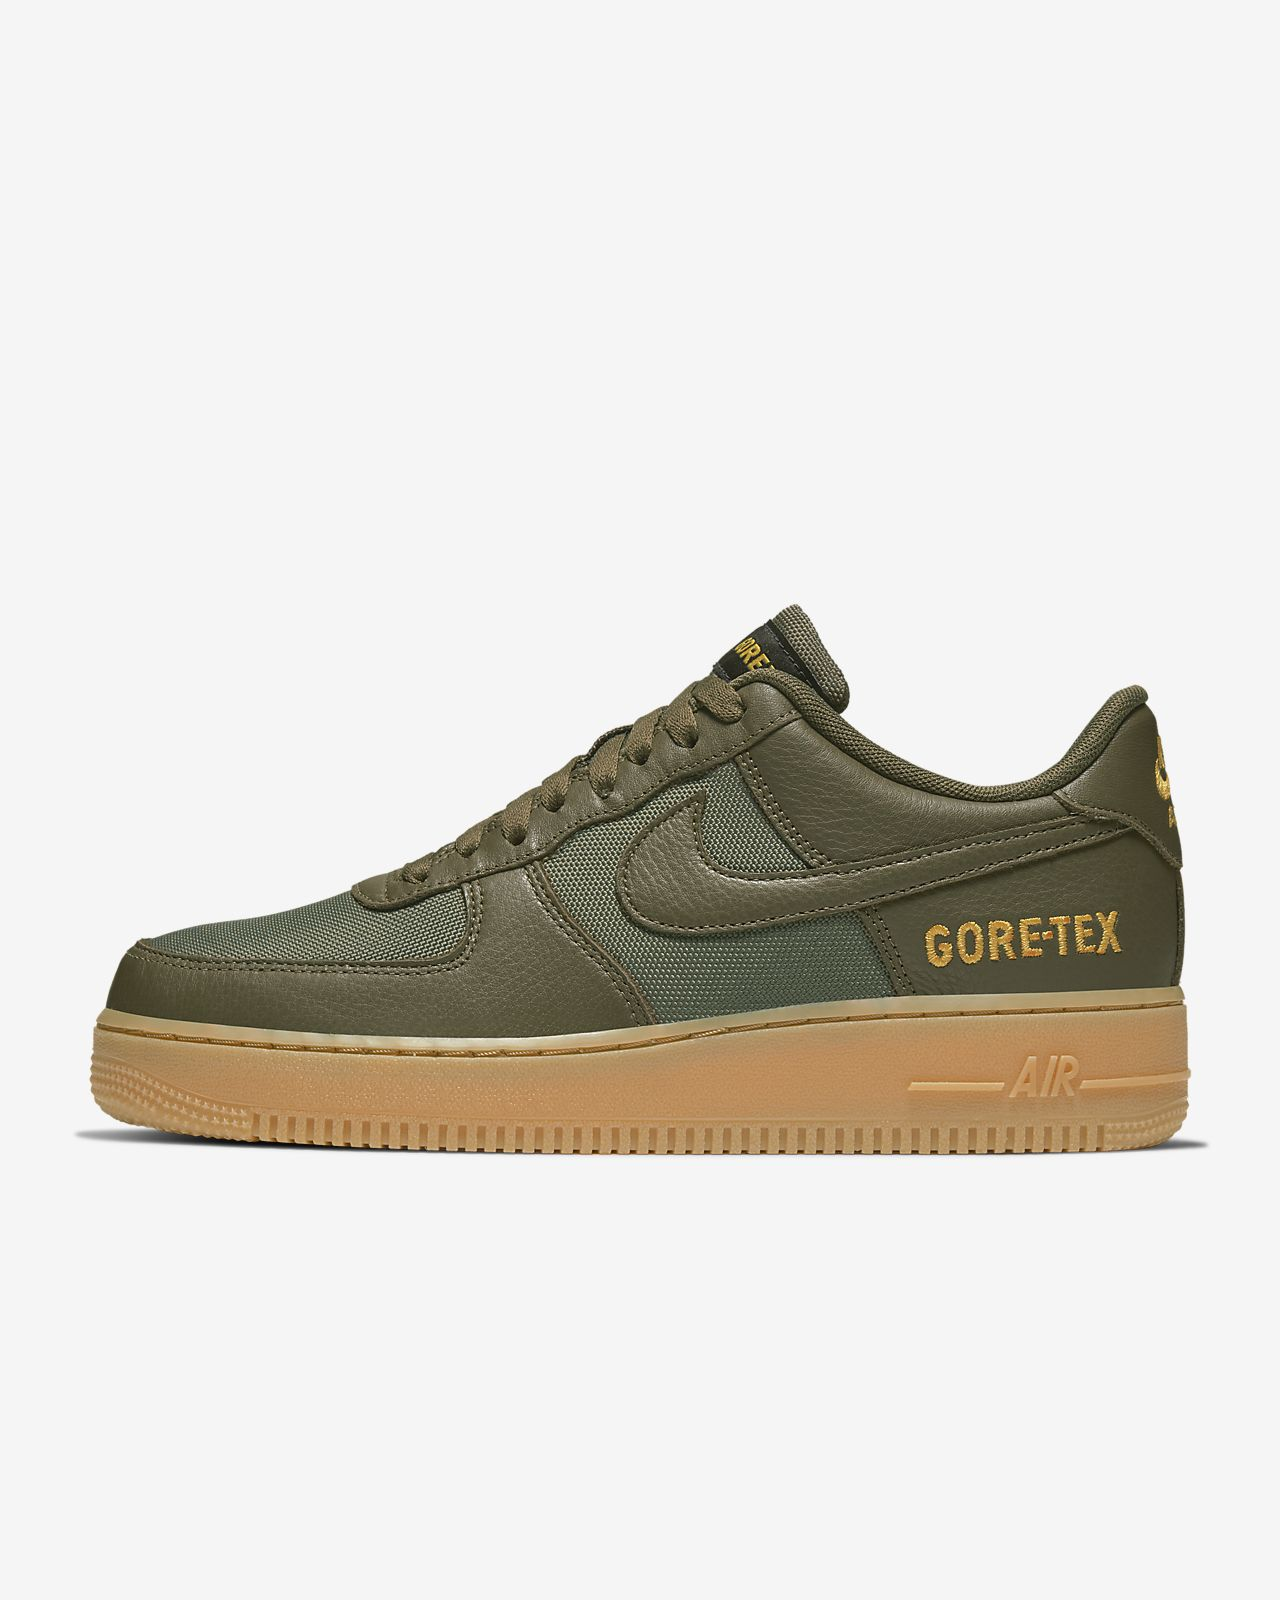 Nike Air Force 1 07 Suede Trainers Khaki in 2020 | Air